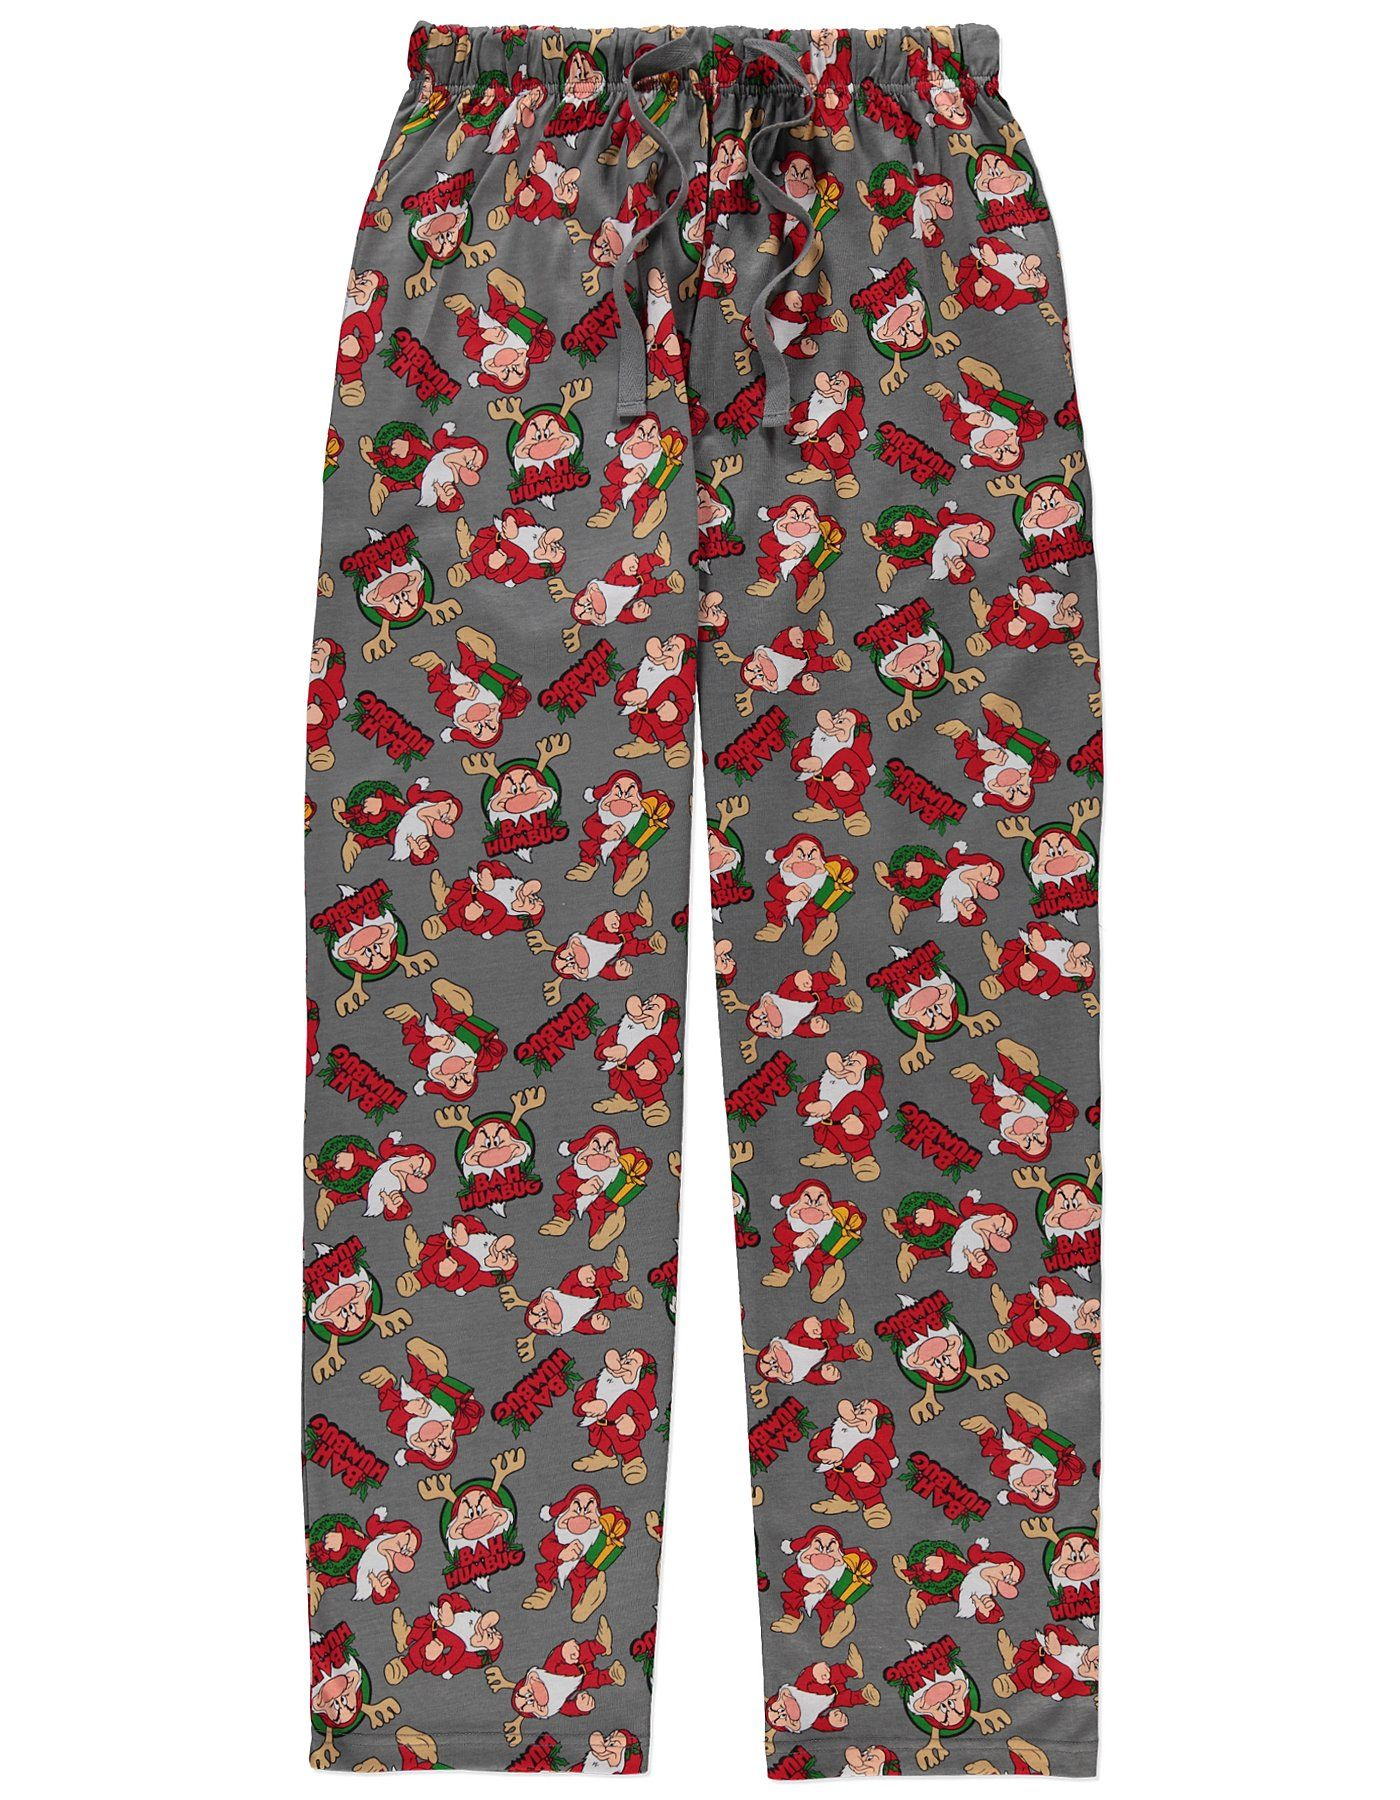 fe4b6549b00d3 Disney Grumpy Print Pyjama Bottoms, read reviews and buy online at George.  Shop from